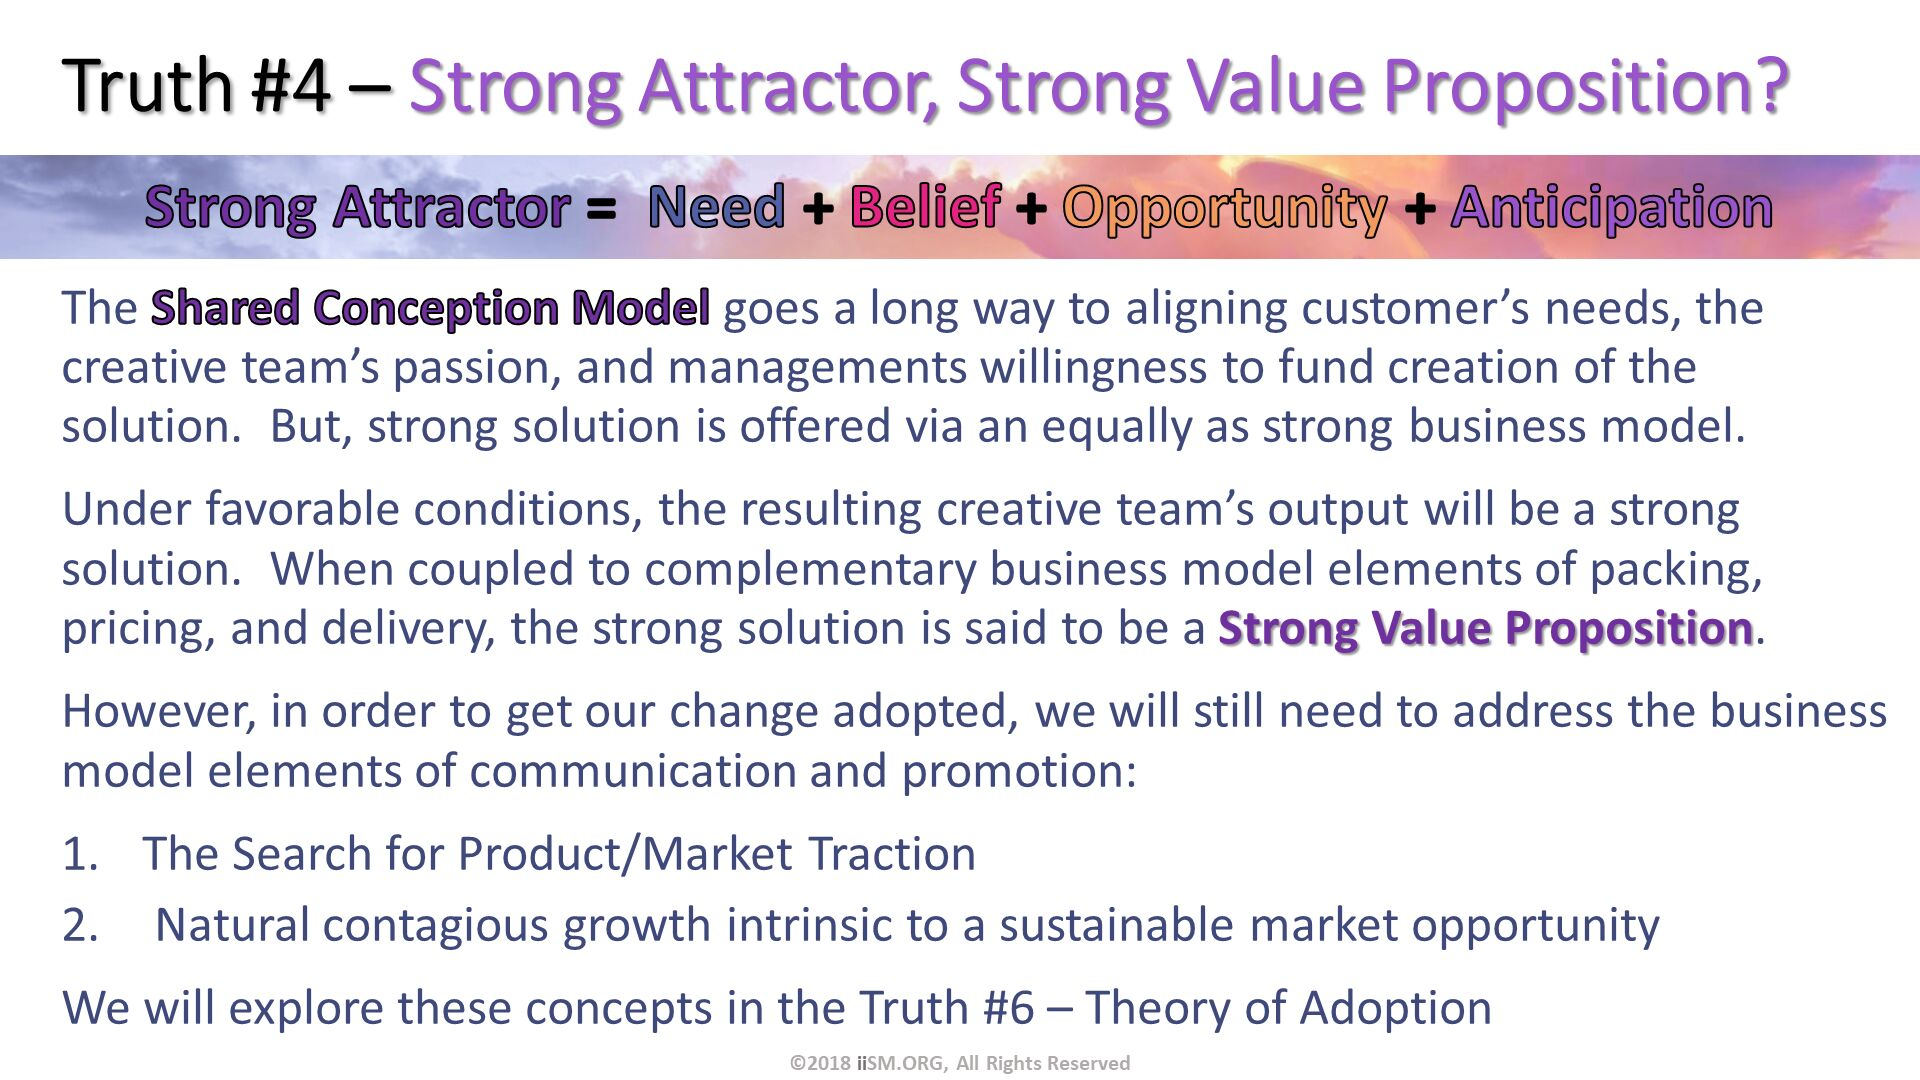 Truth #4 – Strong Attractor, Strong Value Proposition?. The Shared Conception Model goes a long way to aligning customer's needs, the creative team's passion, and managements willingness to fund creation of the solution.  But, strong solution is offered via an equally as strong business model.  Under favorable conditions, the resulting creative team's output will be a strong solution.  When coupled to complementary business model elements of packing, pricing, and delivery, the strong solution is said to be a Strong Value Proposition. However, in order to get our change adopted, we will still need to address the business model elements of communication and promotion: The Search for Product/Market Traction  Natural contagious growth intrinsic to a sustainable market opportunity We will explore these concepts in the Truth #6 – Theory of Adoption. ©2018 iiSM.ORG, All Rights Reserved.